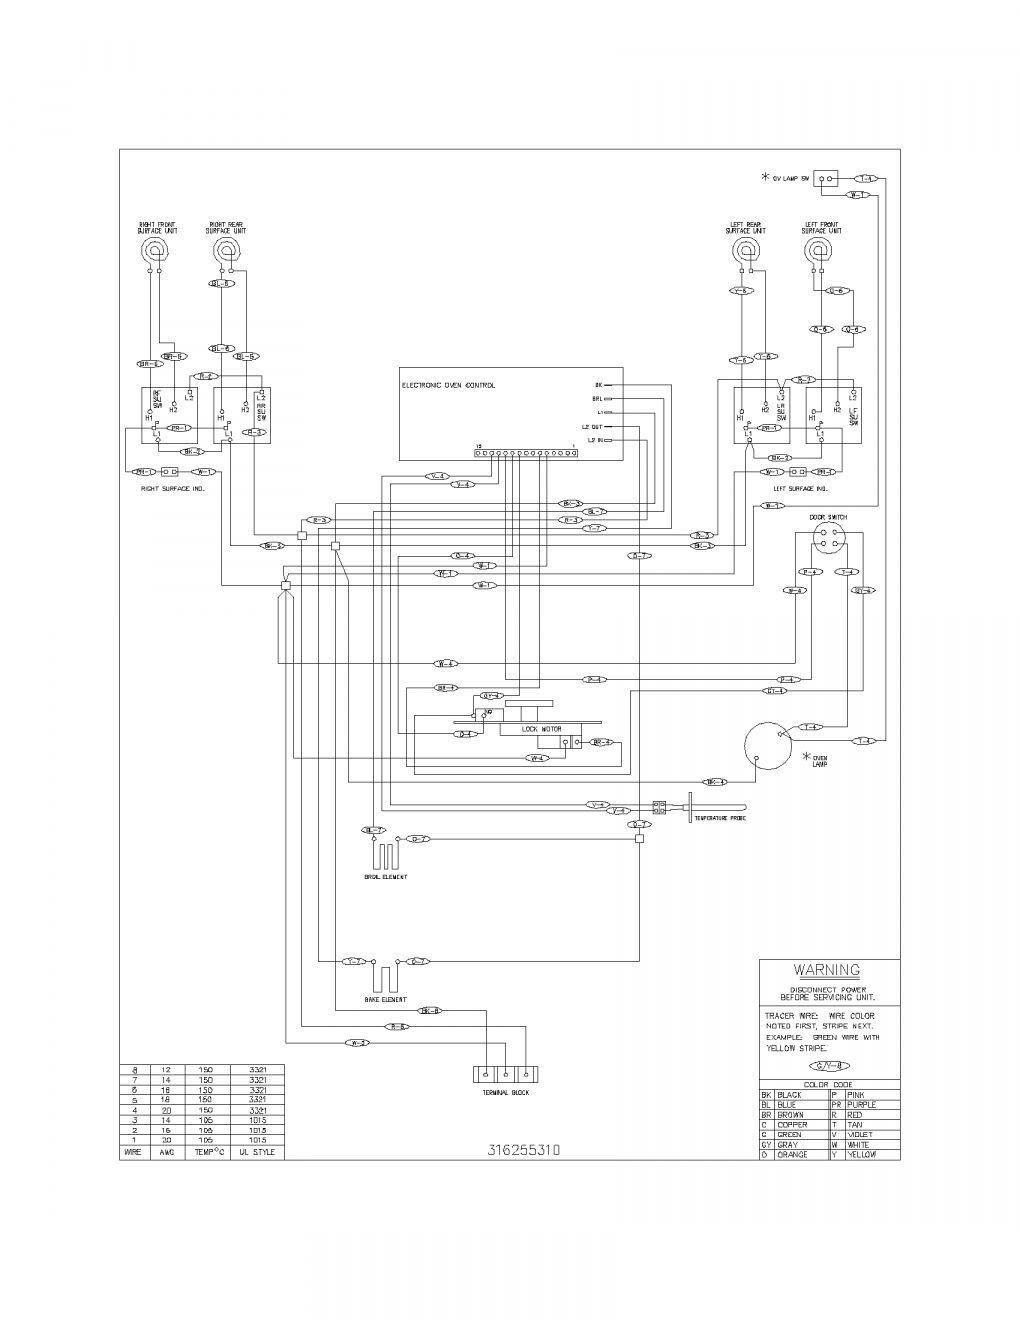 17+ Frigidaire Electric Range Wiring Diagramfrigidaire electric range  wiring diagram, frigidaire electric … in 2020 | Electric range, Electrical  wiring diagram, ElectricityPinterest